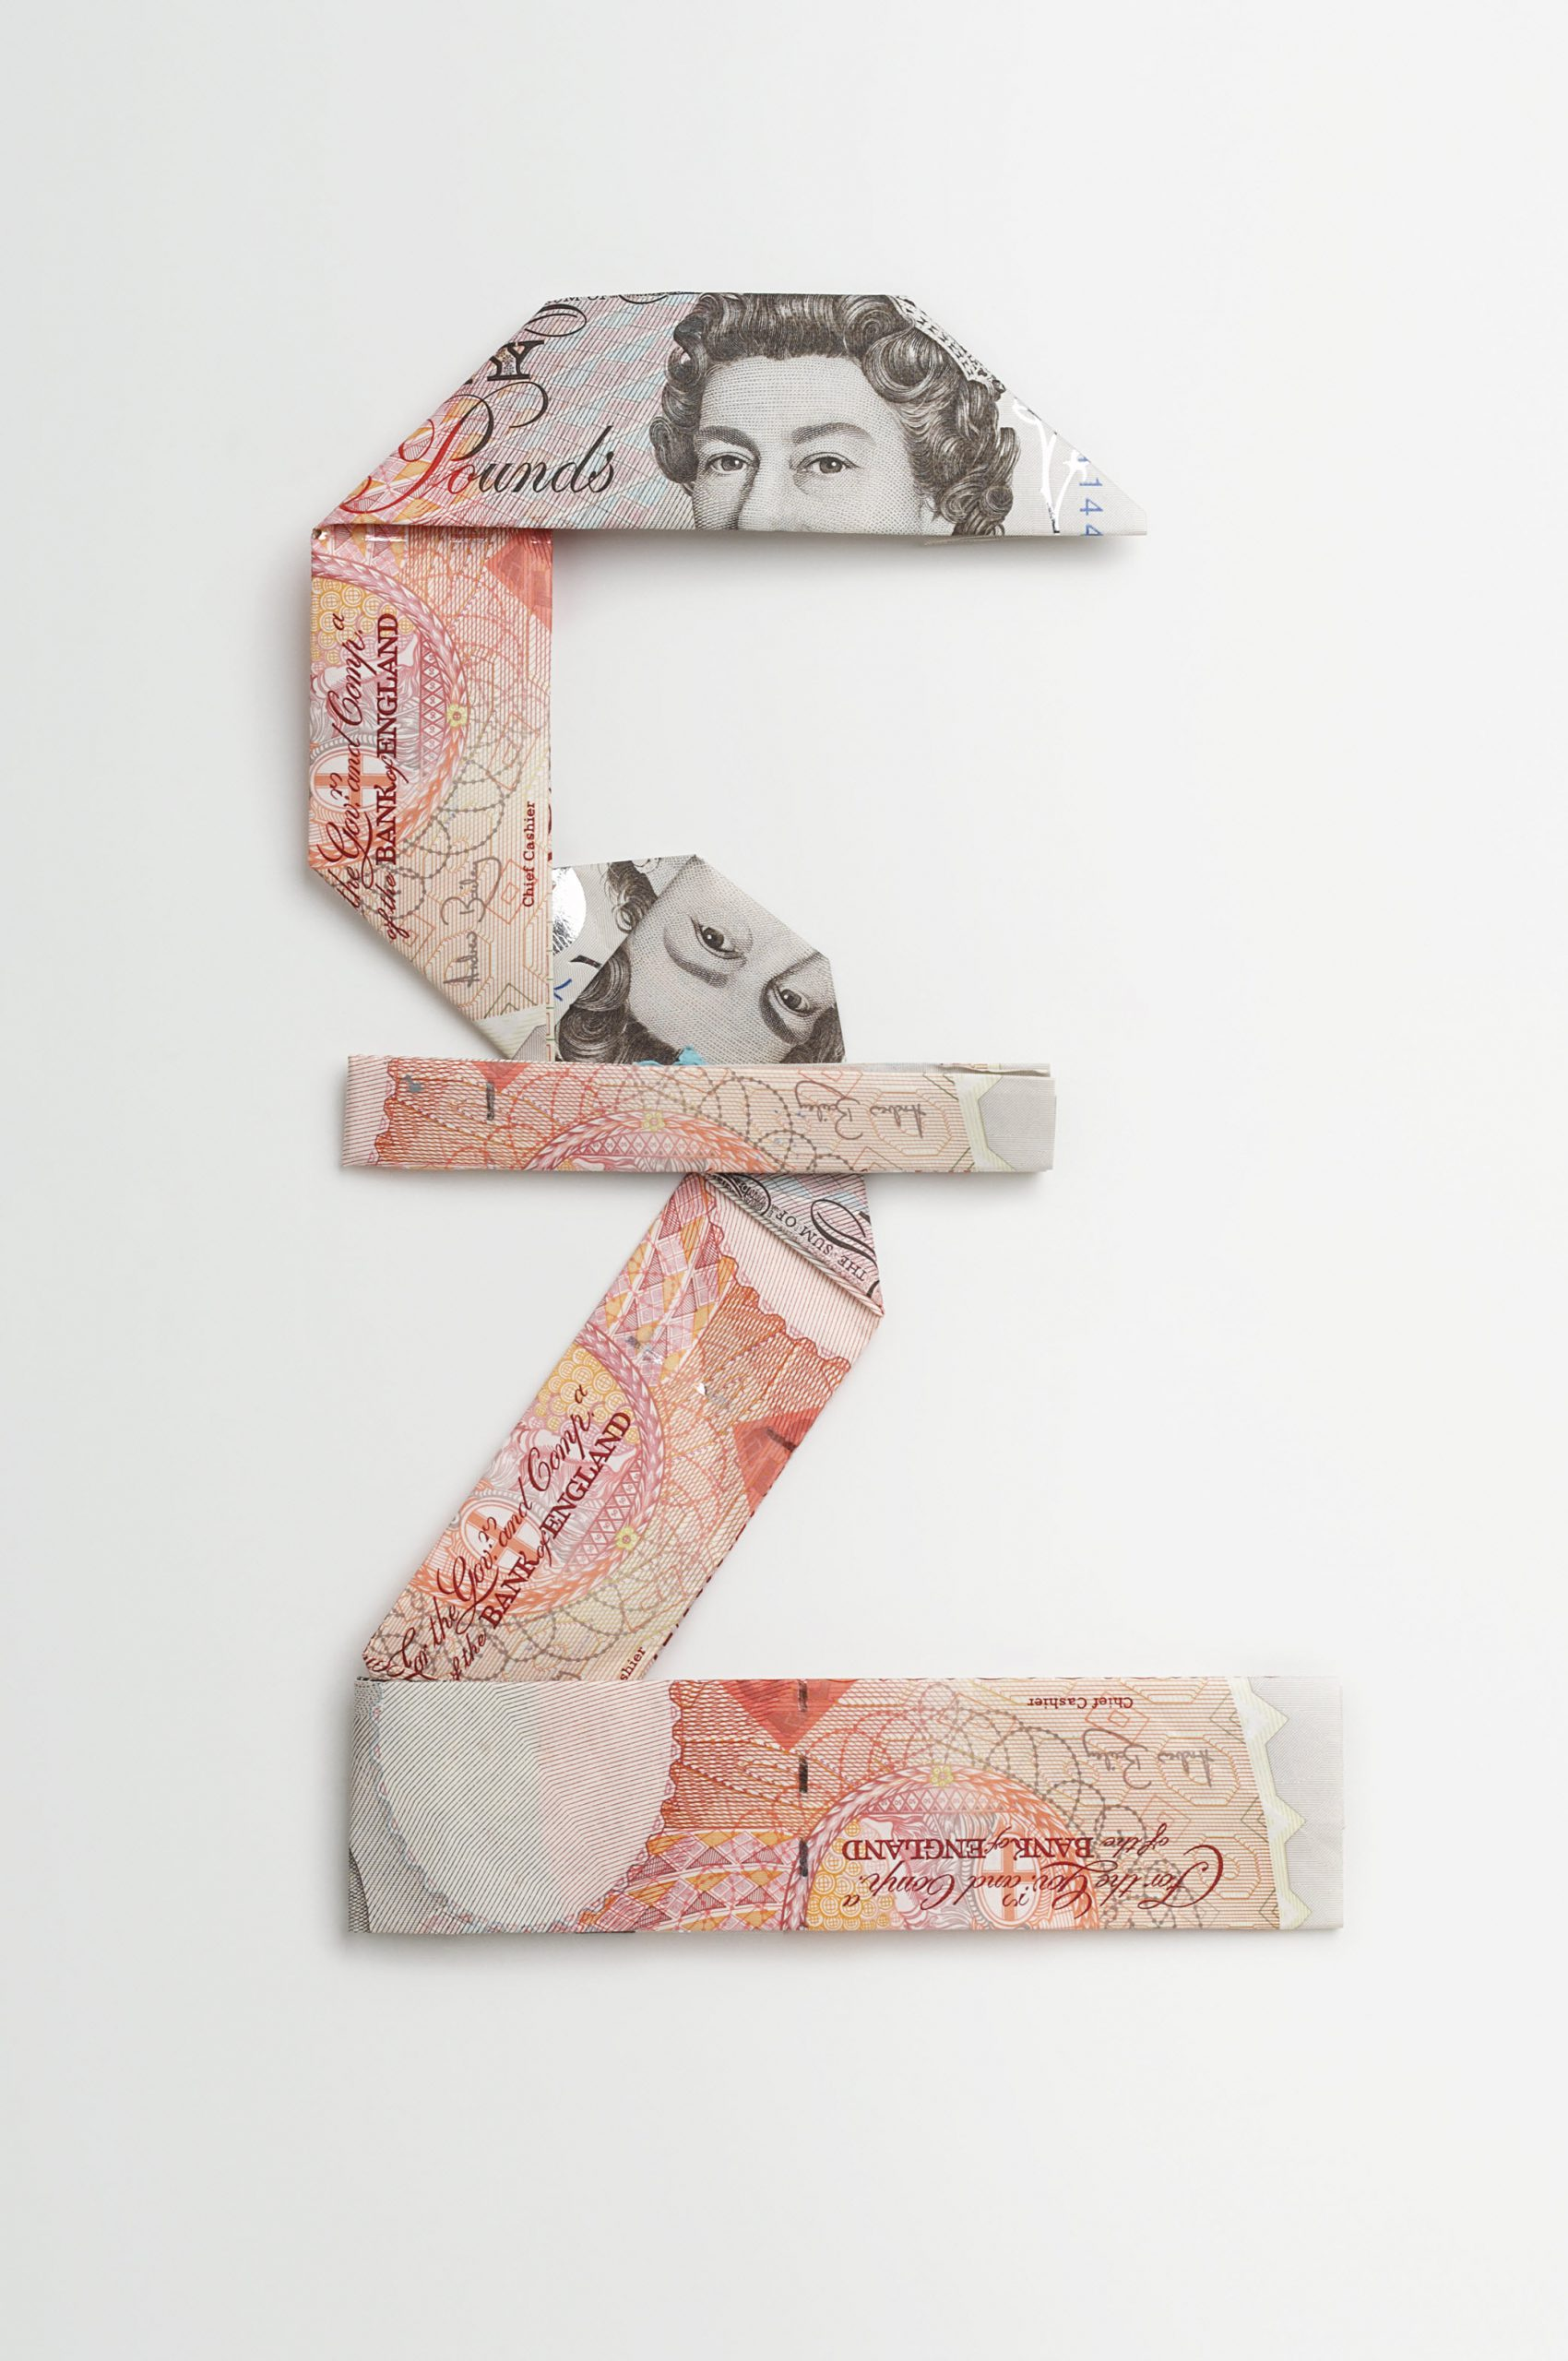 Pound sterling symbol made of folded banknotes